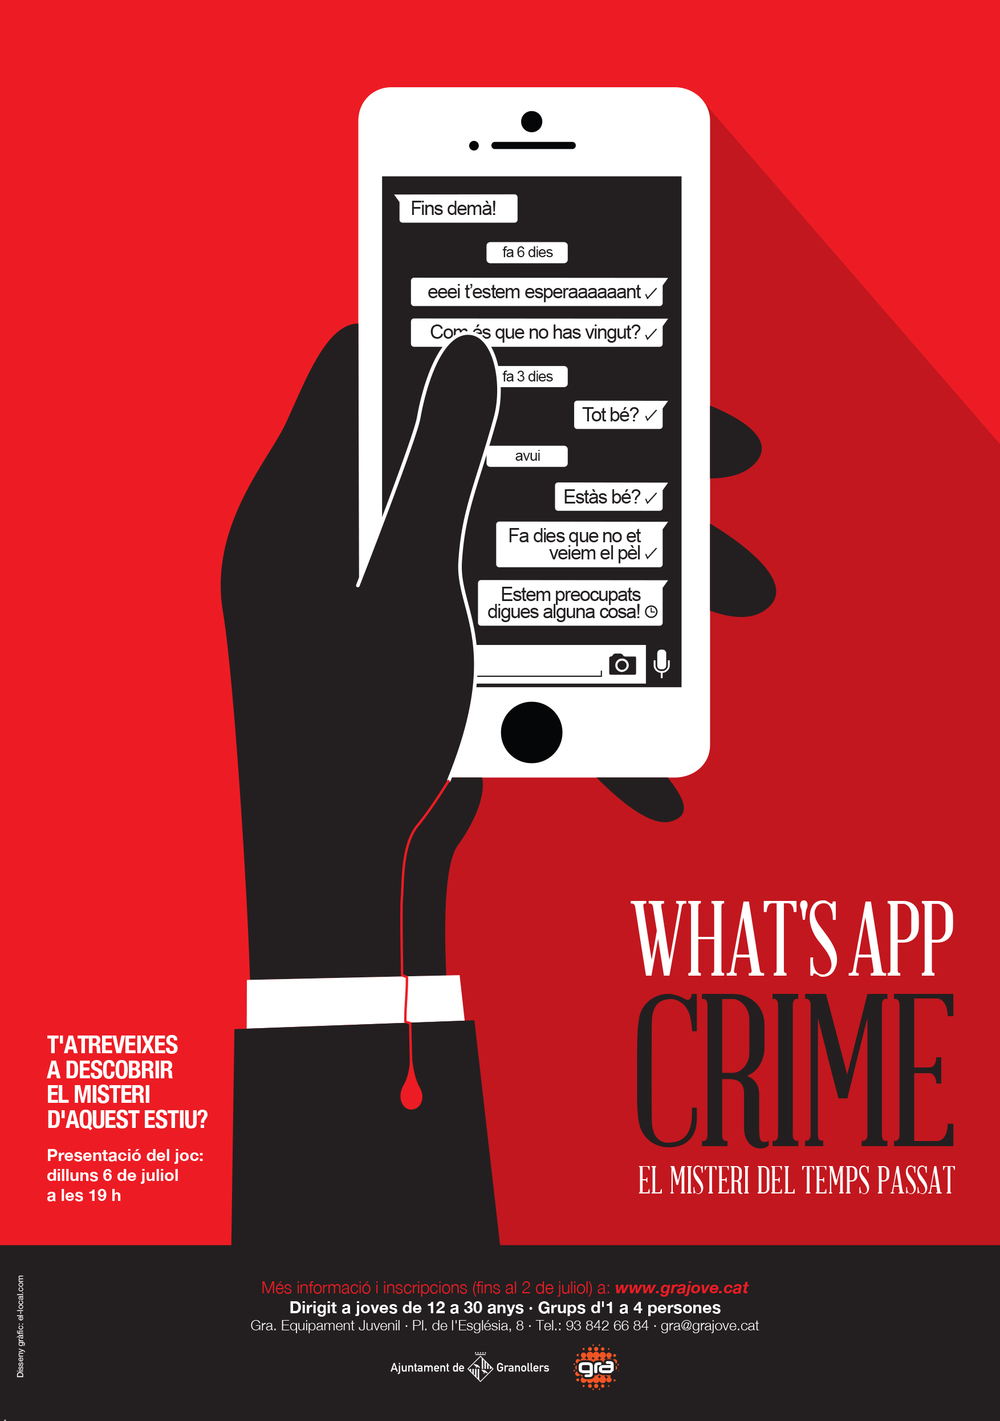 el local_what's app crime